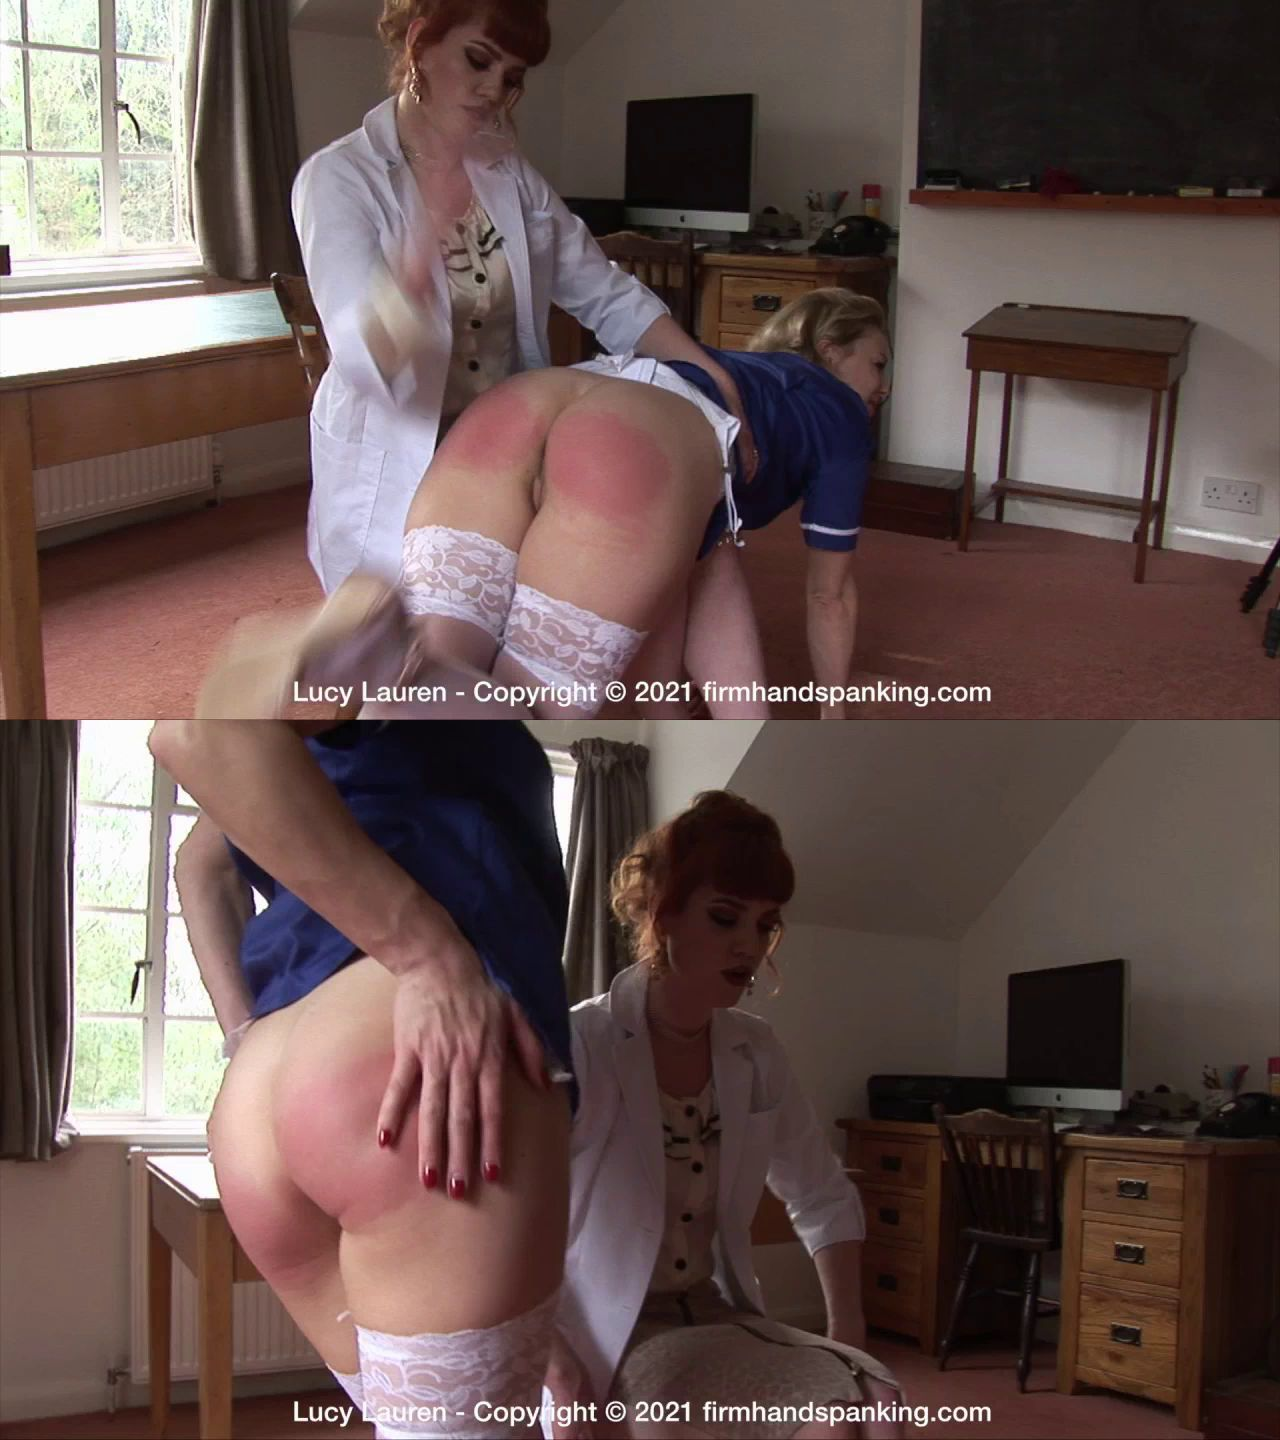 Firm Hand Spanking – MP4/HD – Lucy Lauren – The Clinic/Epic bare bottom spanking for Lucy Lauren from her new boss